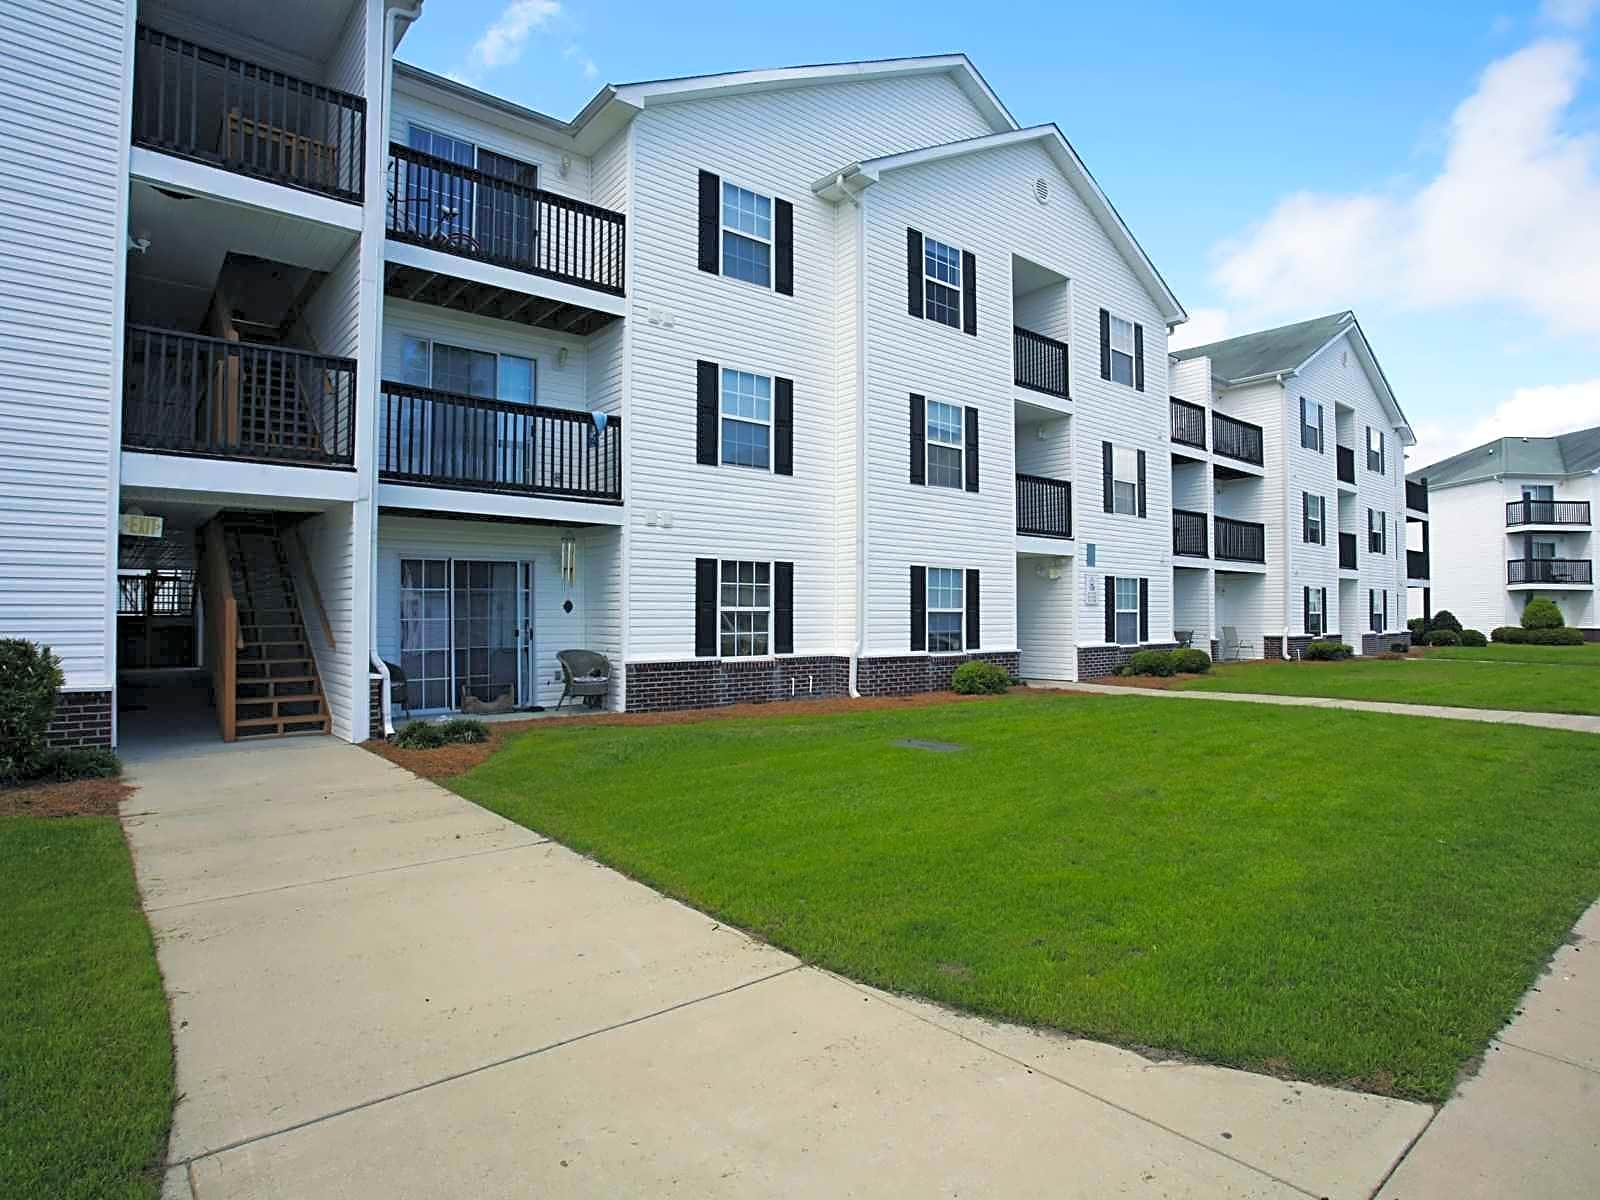 Photo: Myrtle Beach Apartment for Rent - $675.00 / month; Studio & 1 Ba